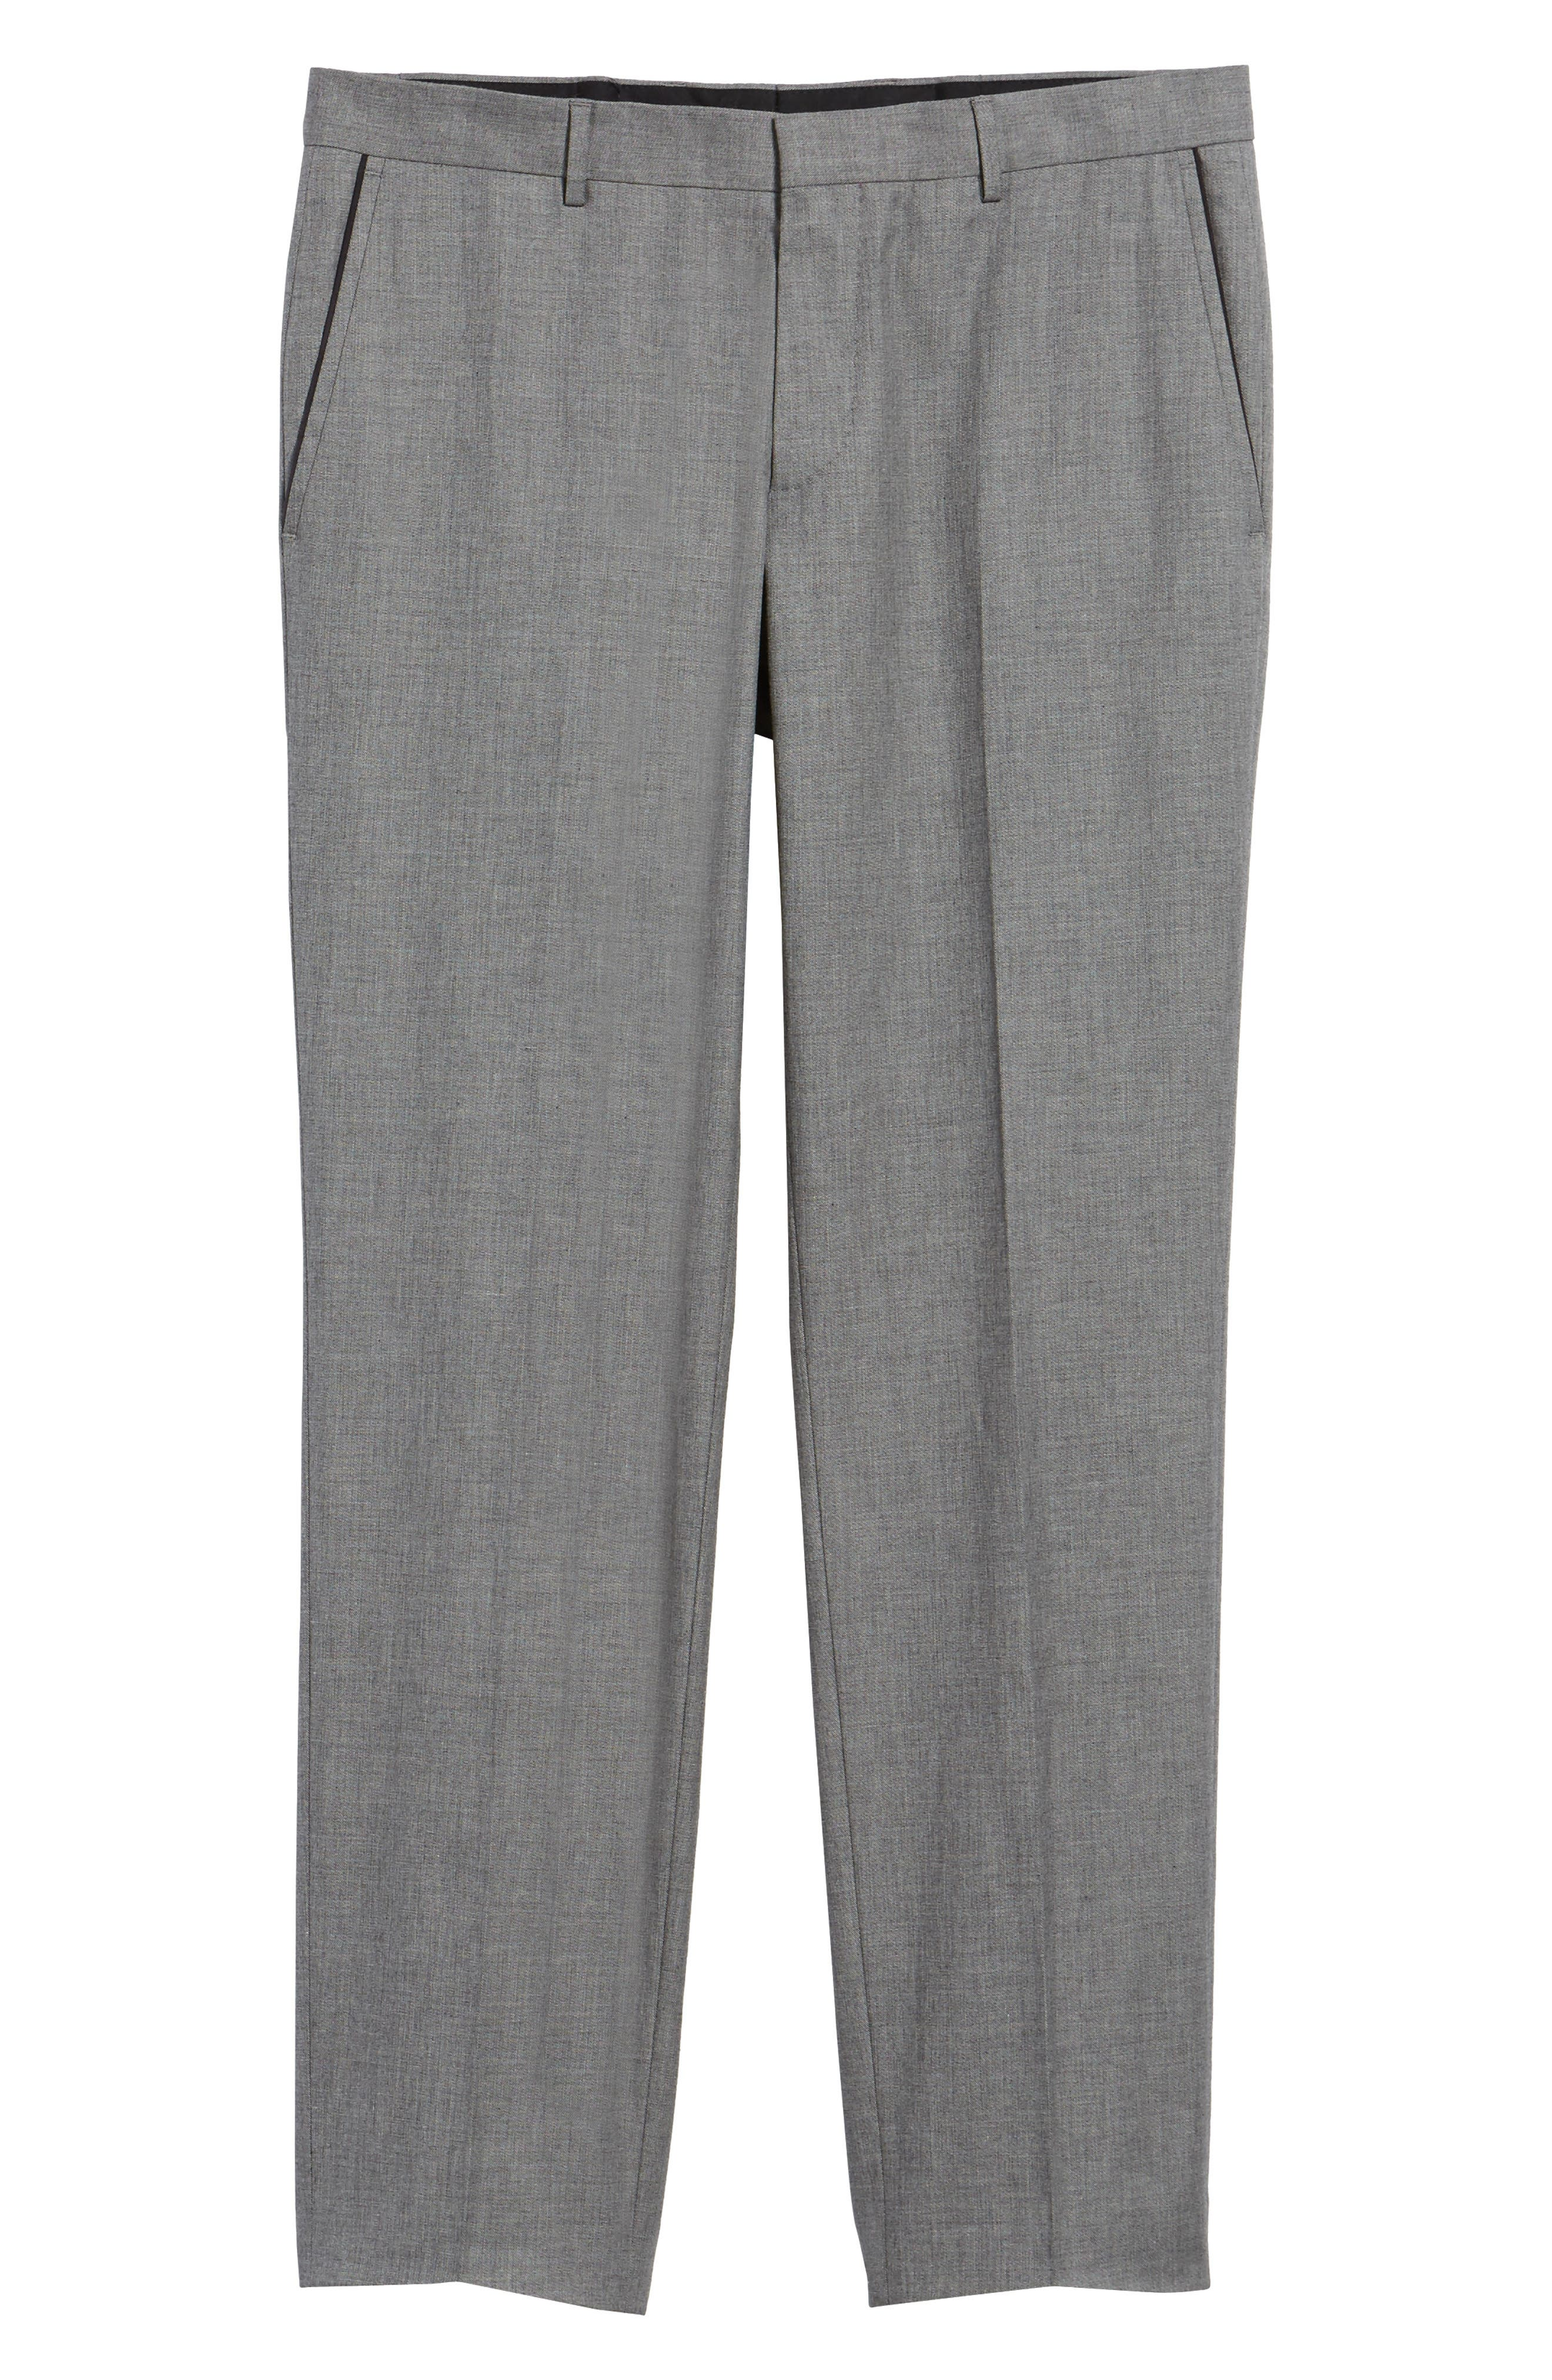 Blake Flat Front Trim Fit Solid Wool Trousers,                             Alternate thumbnail 6, color,                             061